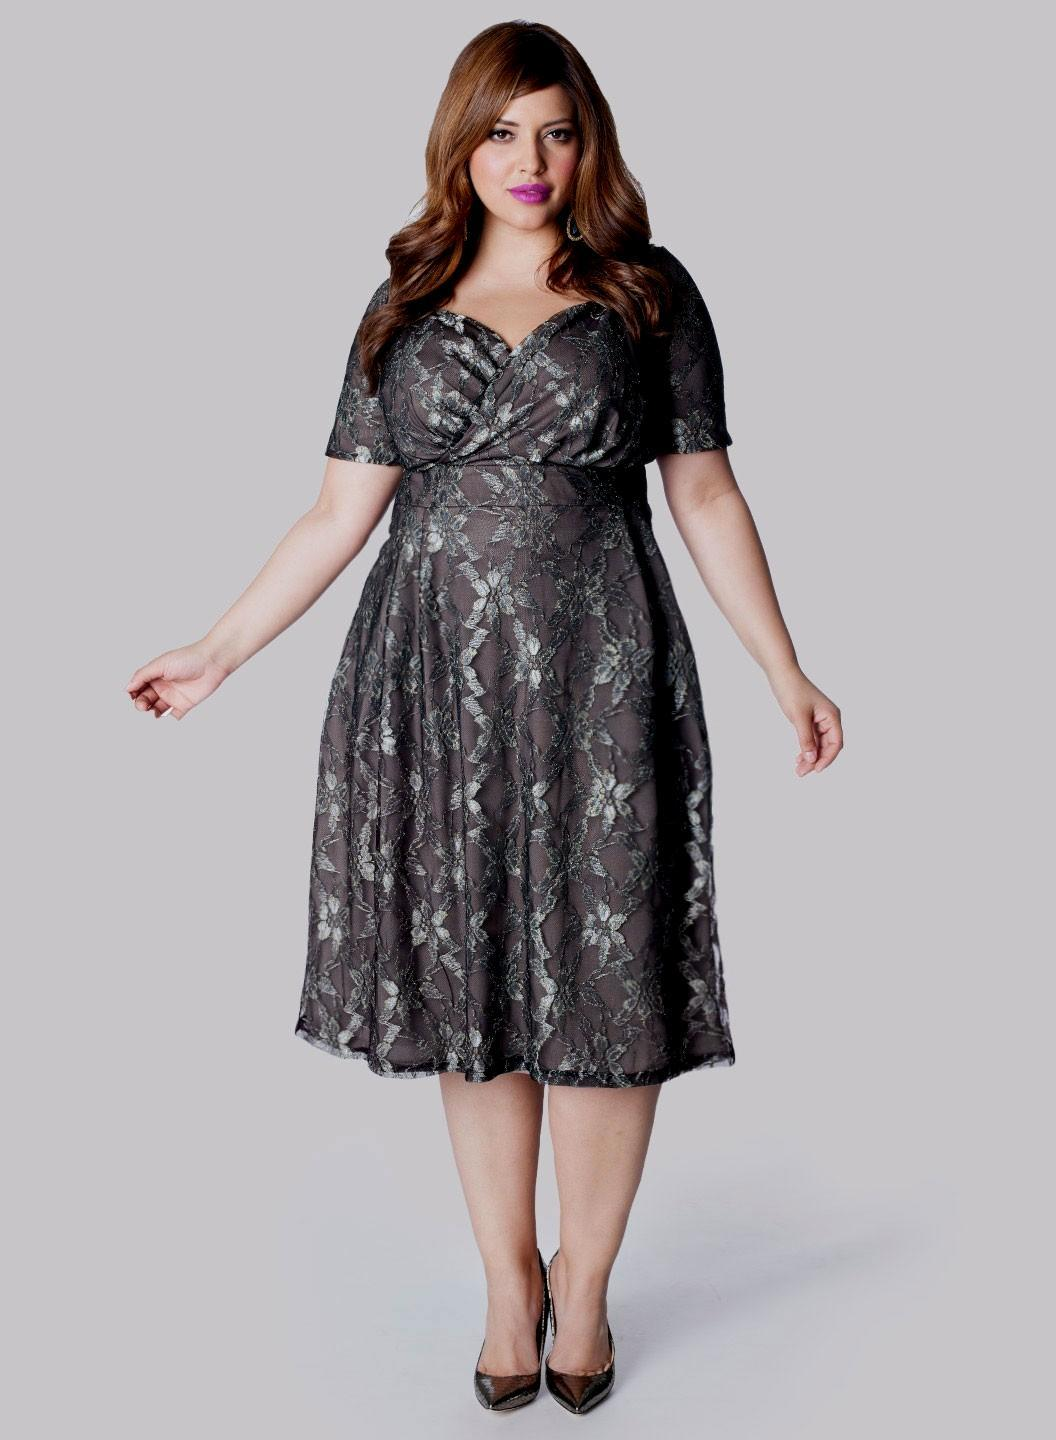 evening dresses for weddings plus size photo - 1